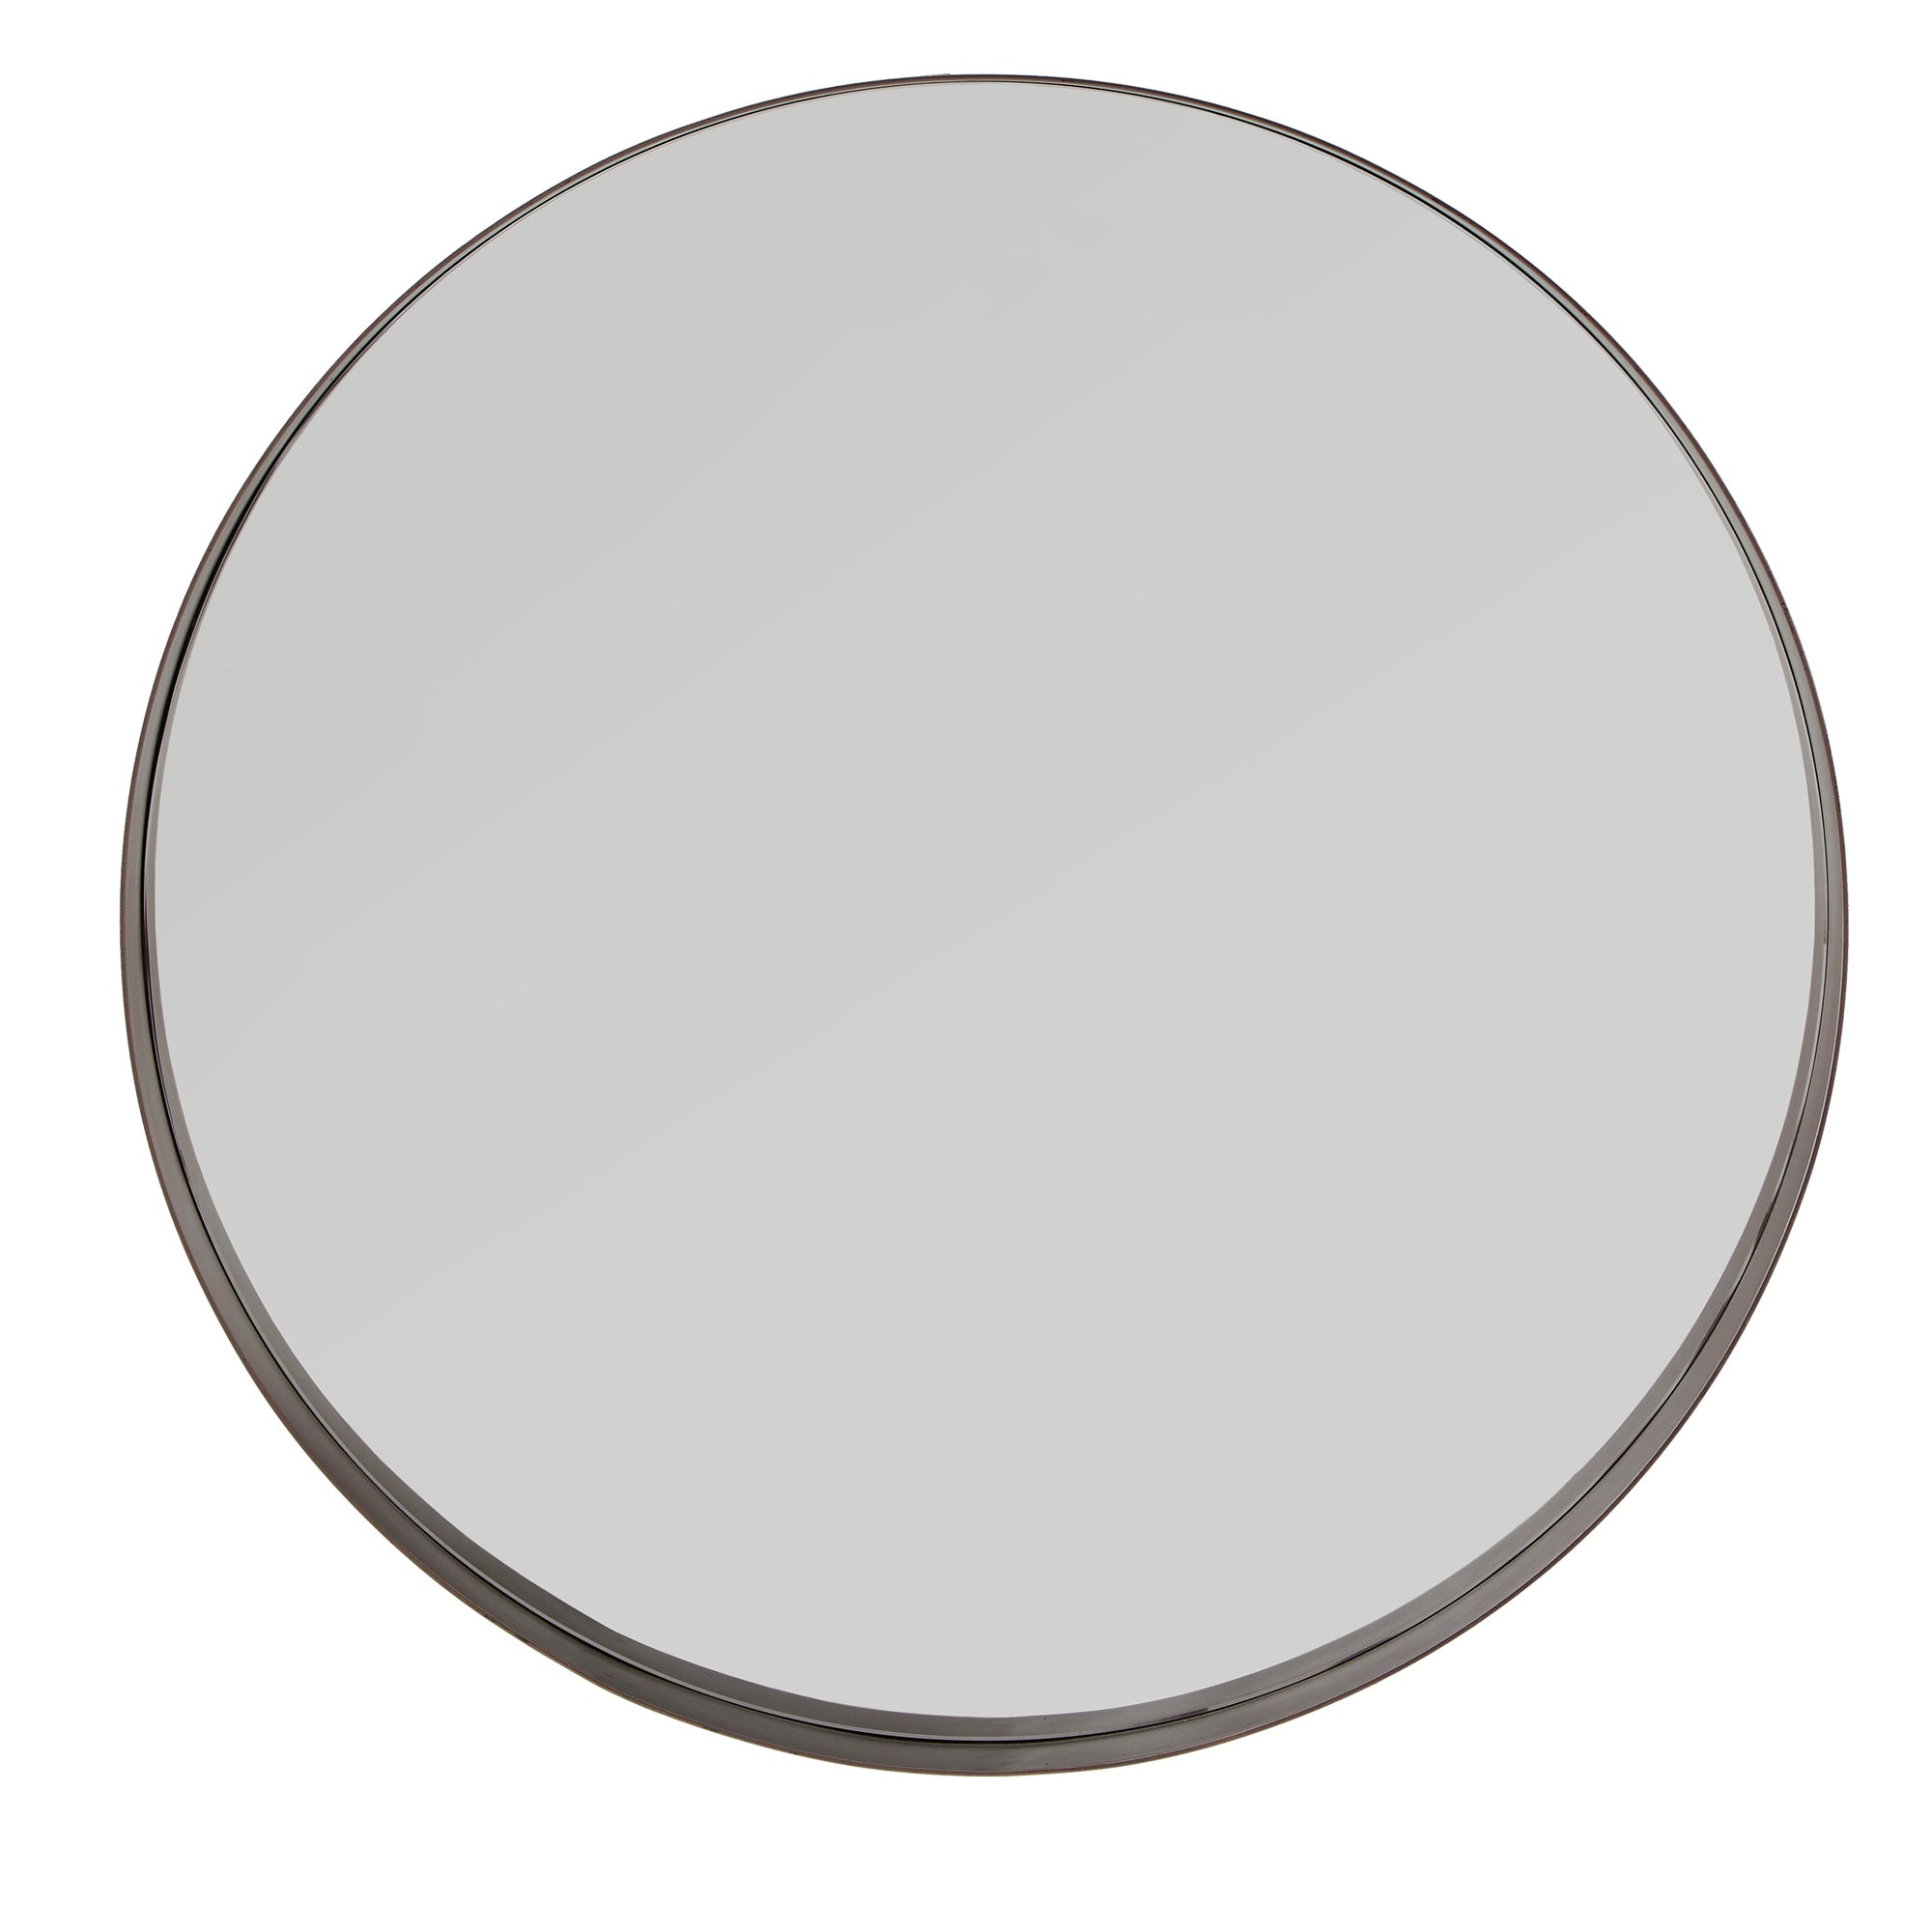 Ledge Round Wall Mirror - Bronze Finish